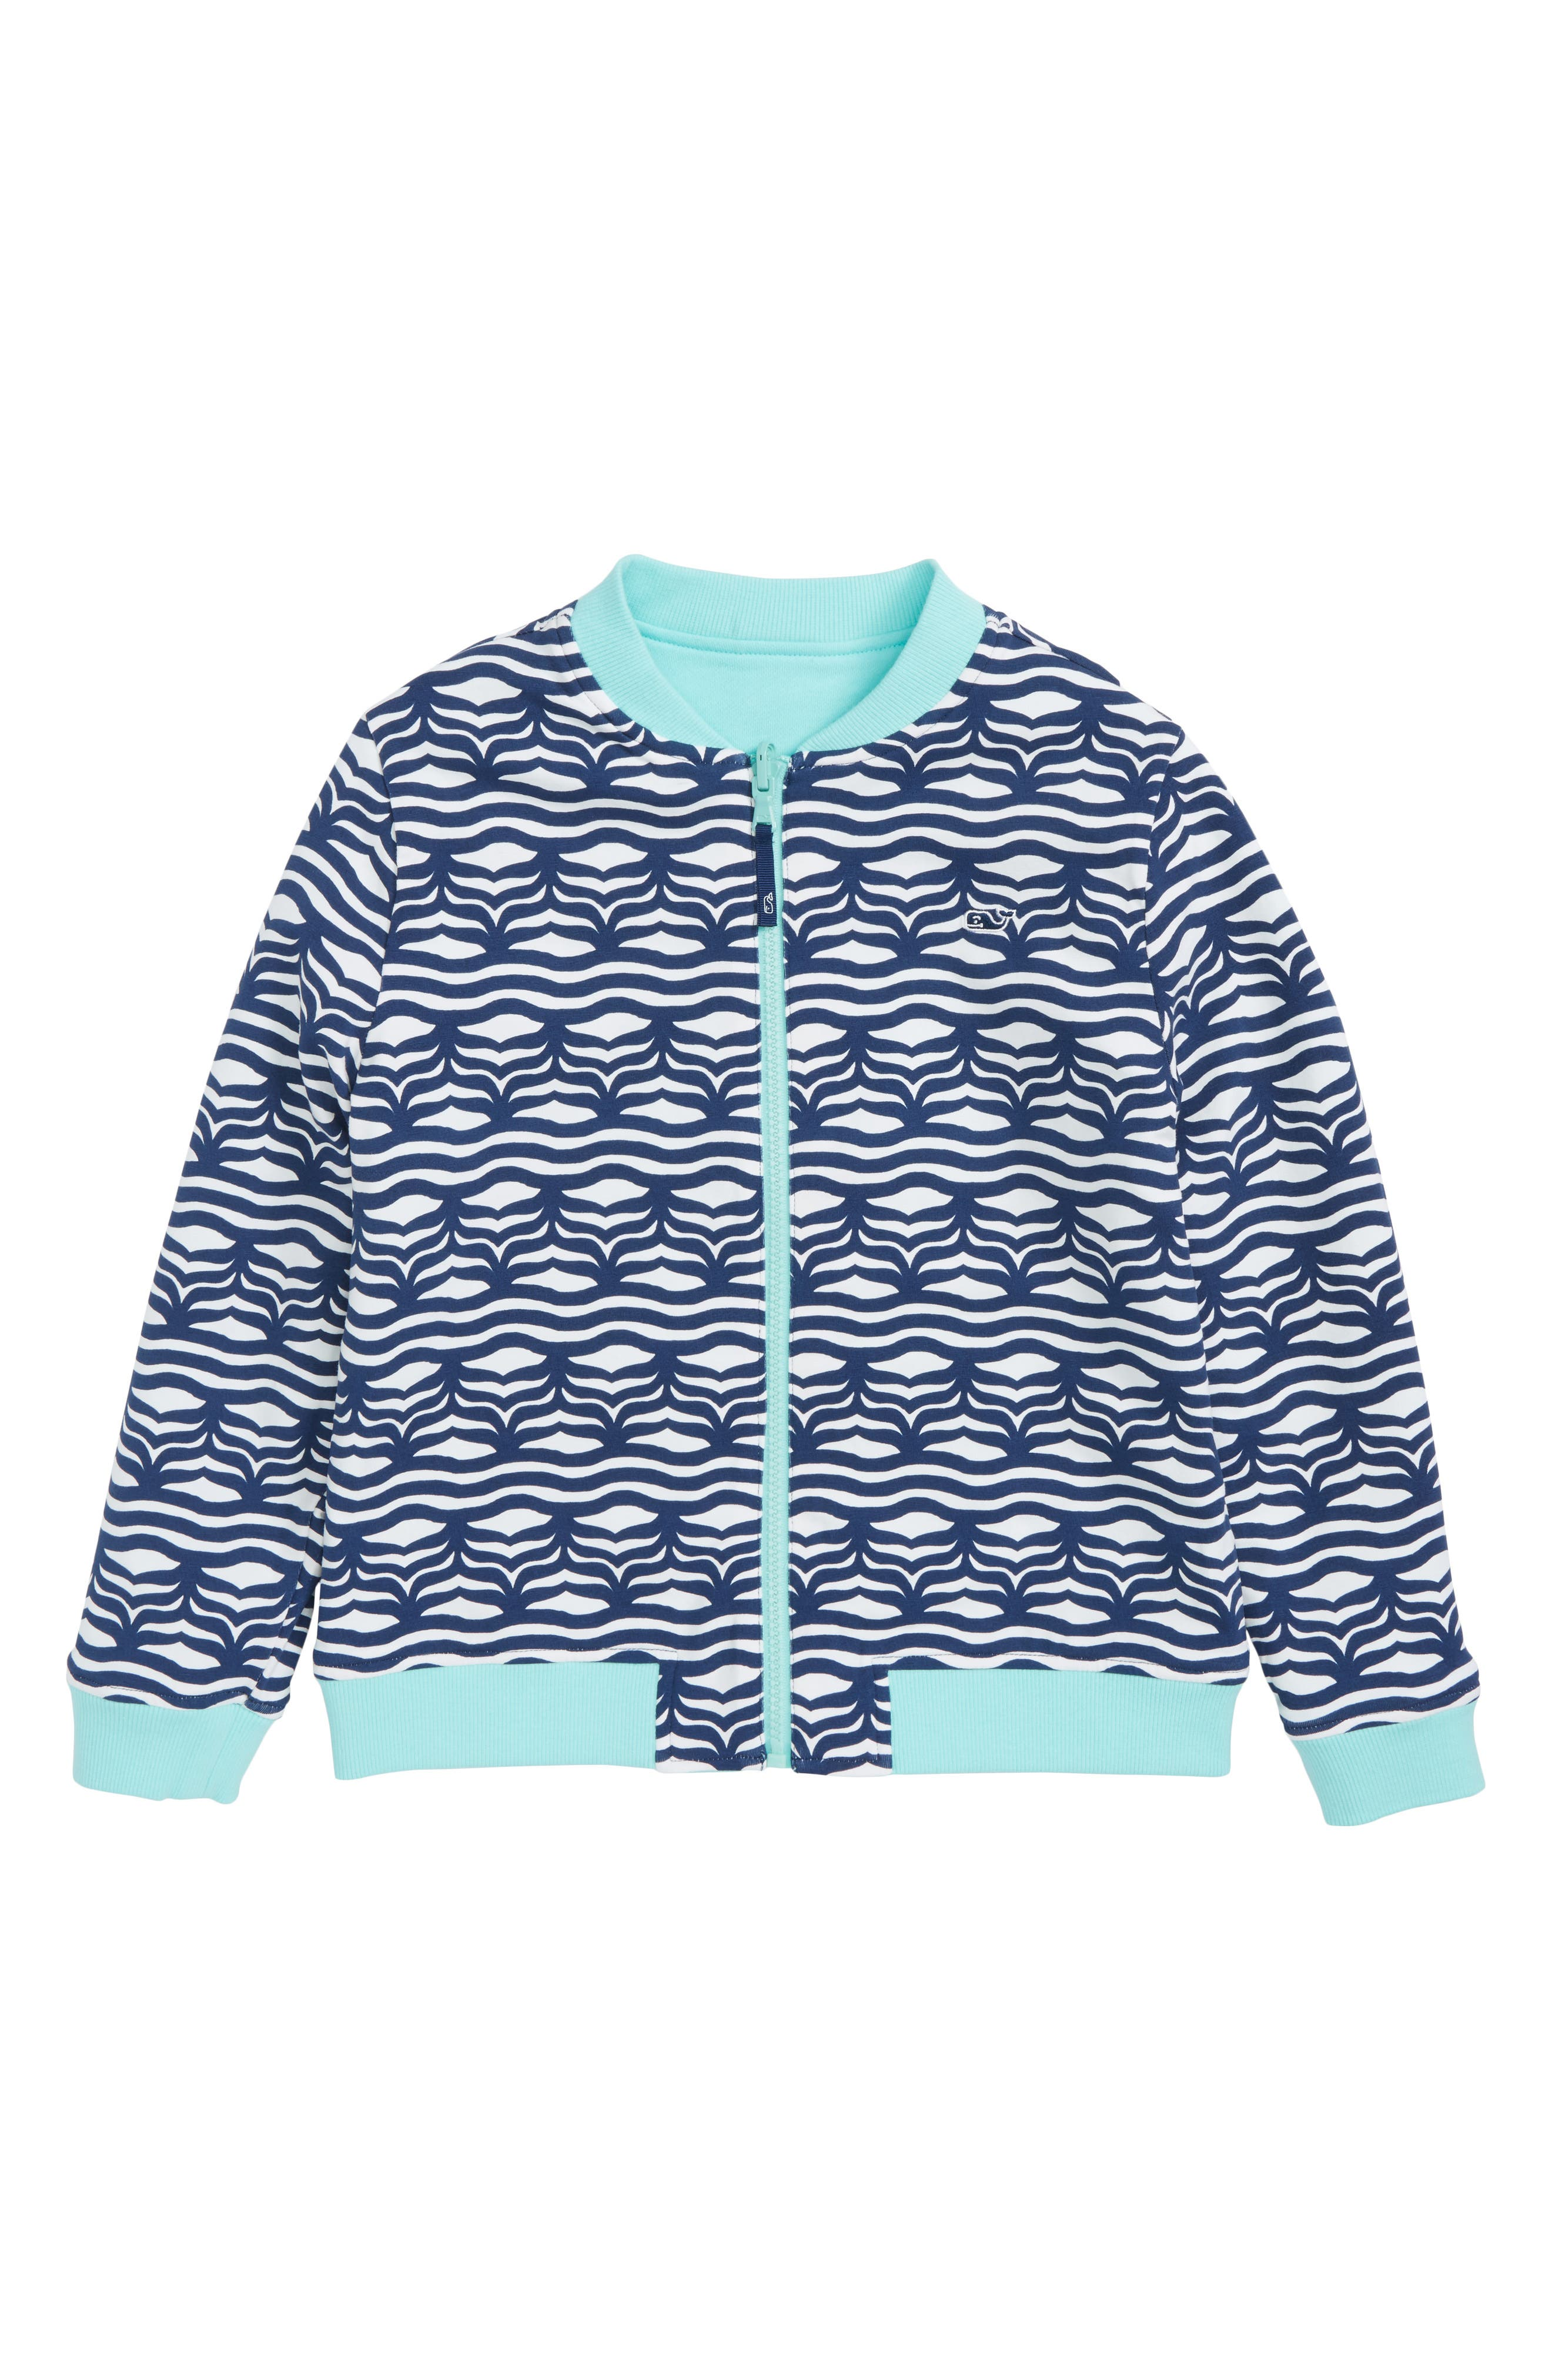 Reversible Full Zip Bomber Jacket,                             Alternate thumbnail 2, color,                             Caicos